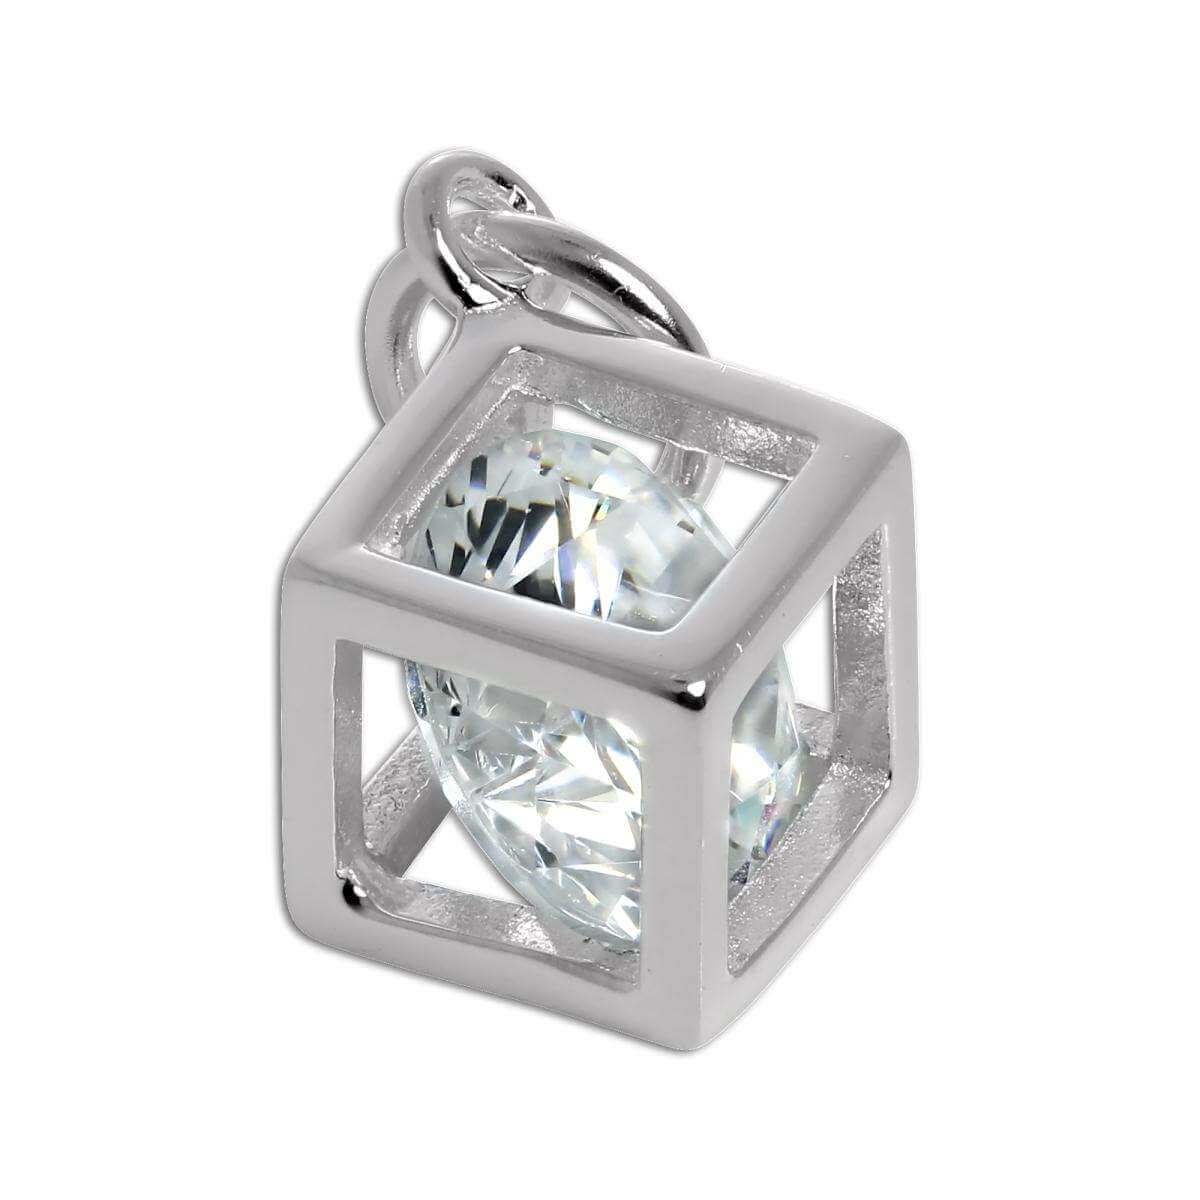 Sterling Silver Open Cube Charm with CZ Crystal